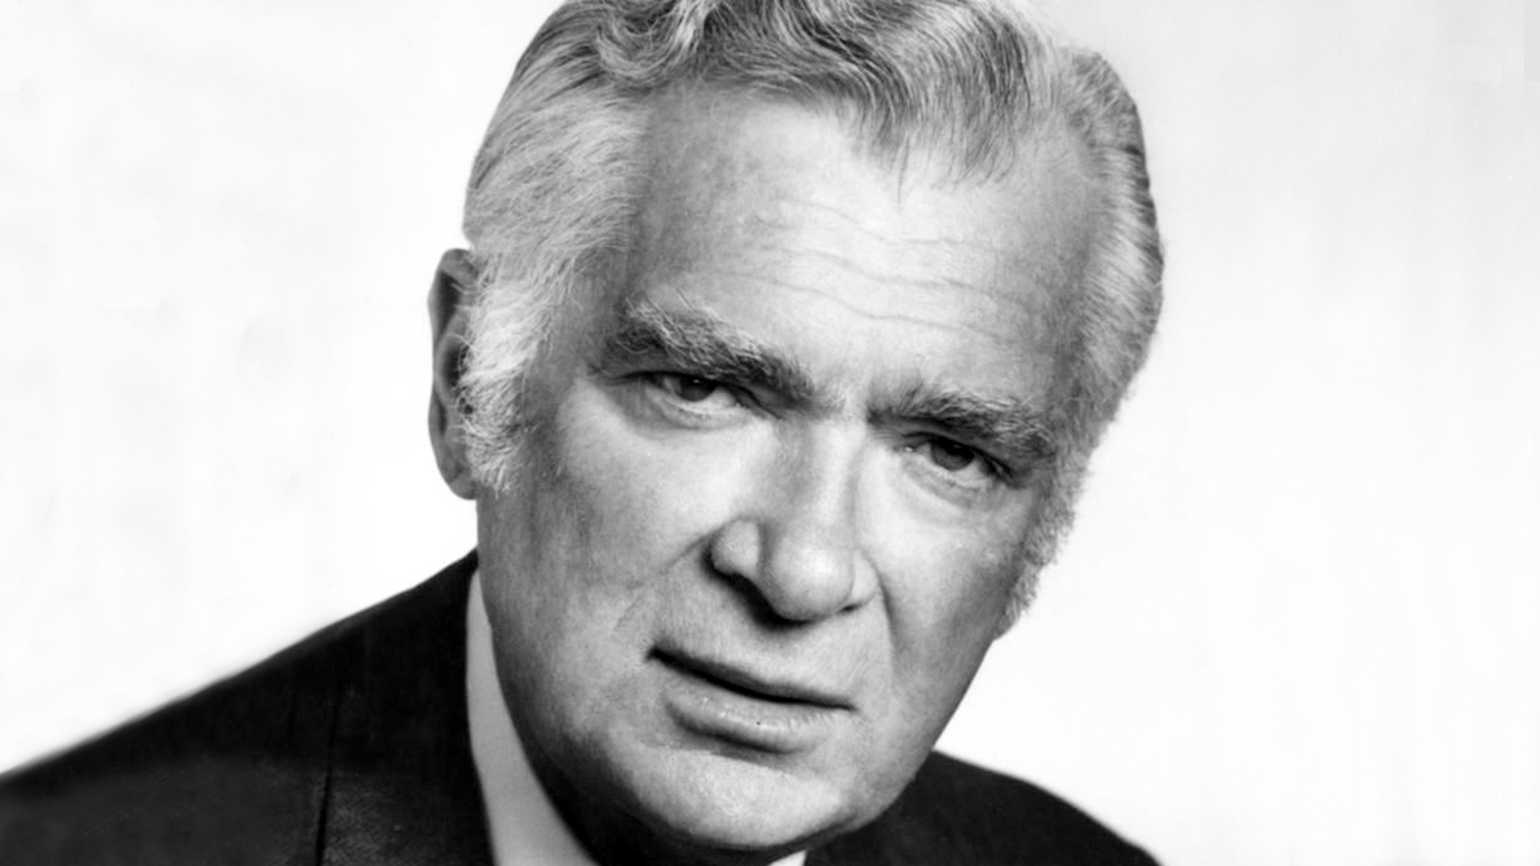 Actor Buddy Ebsen